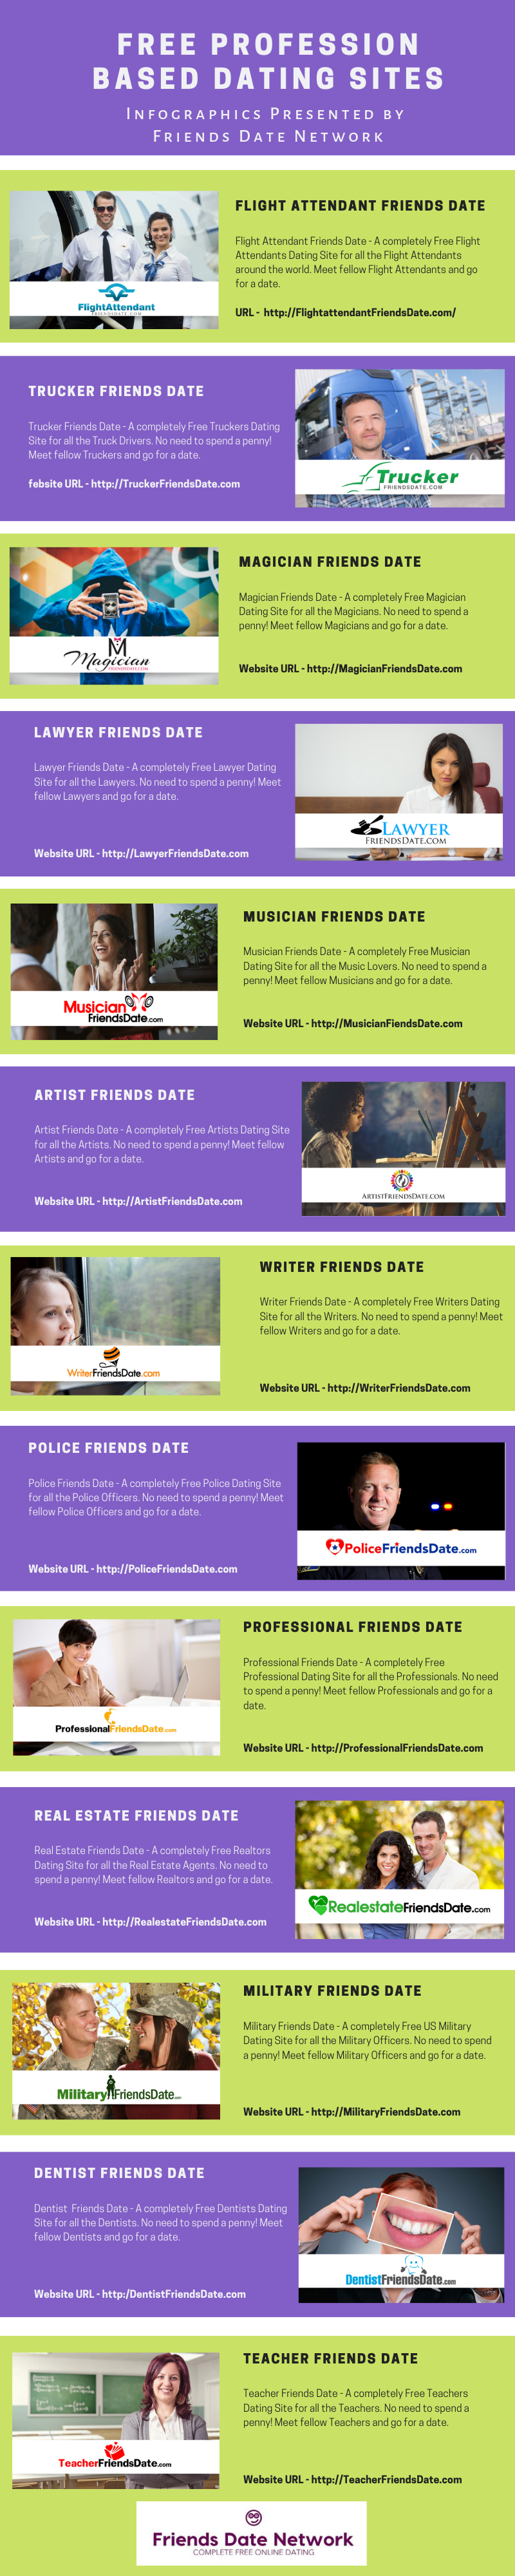 Free Profession Based Dating Sites - Infographics